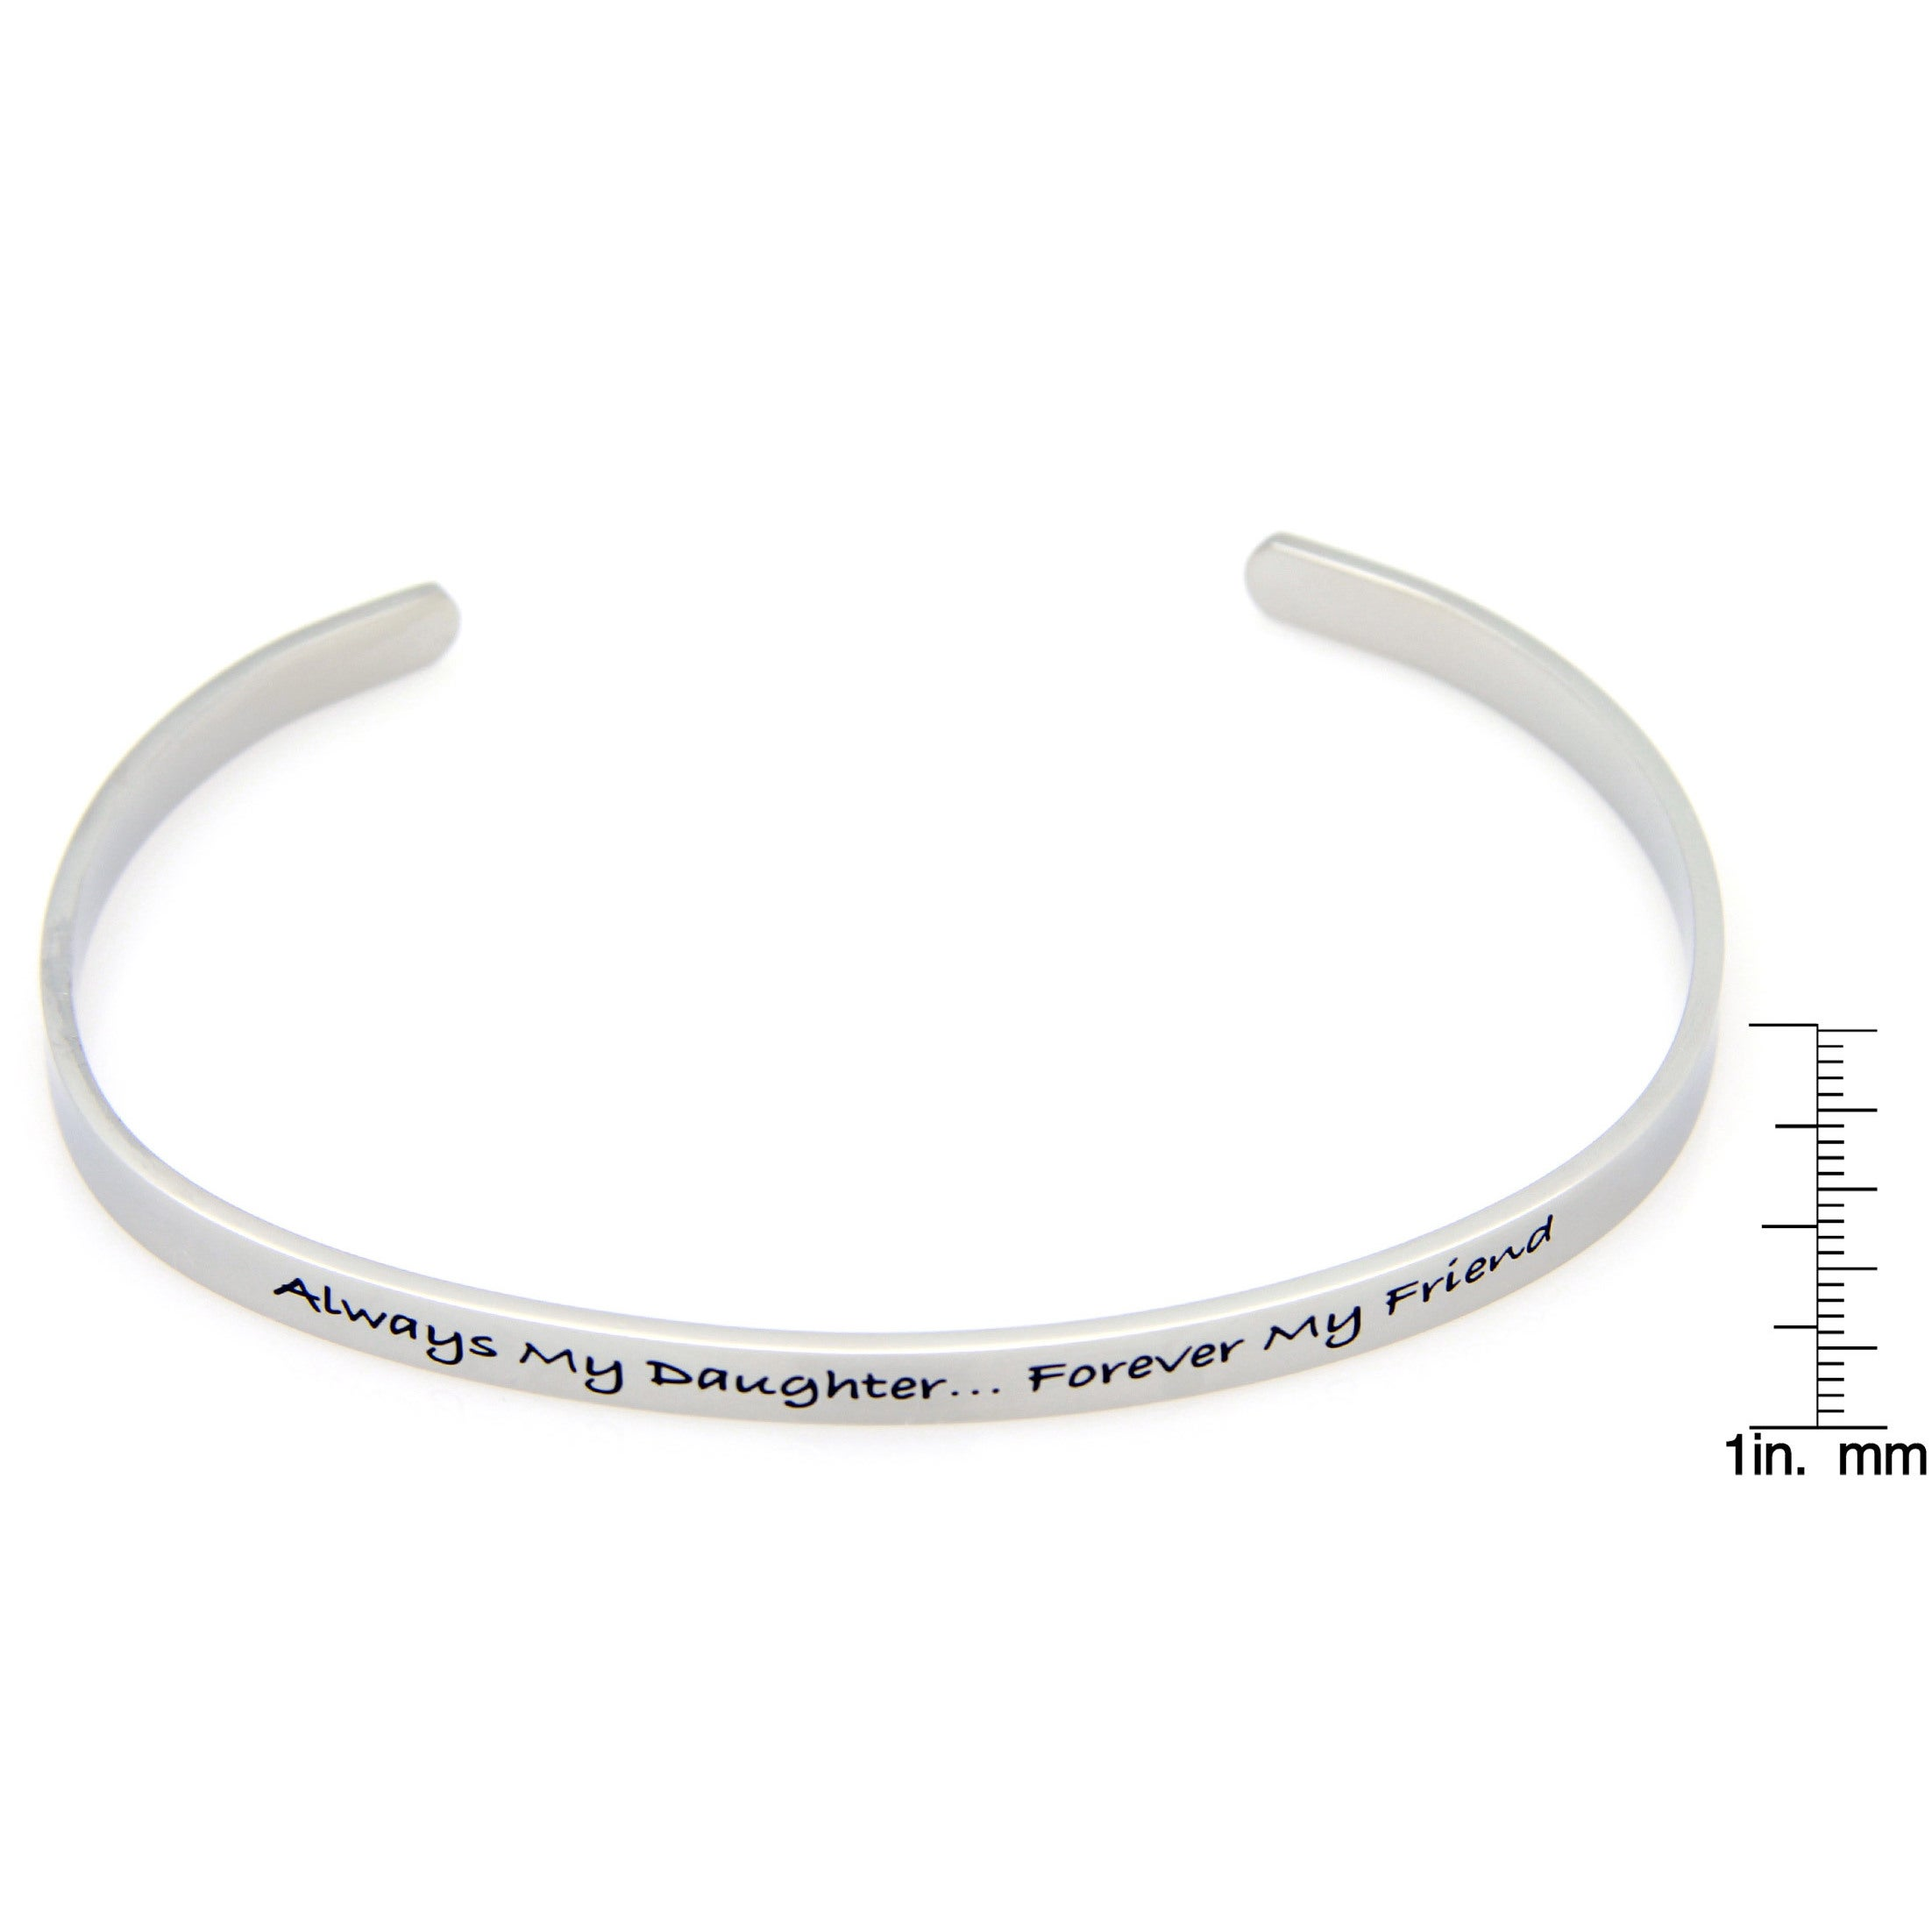 Overstock.com Stainless Steel Always My Daughter Forever My Friend Cuff Bracelet